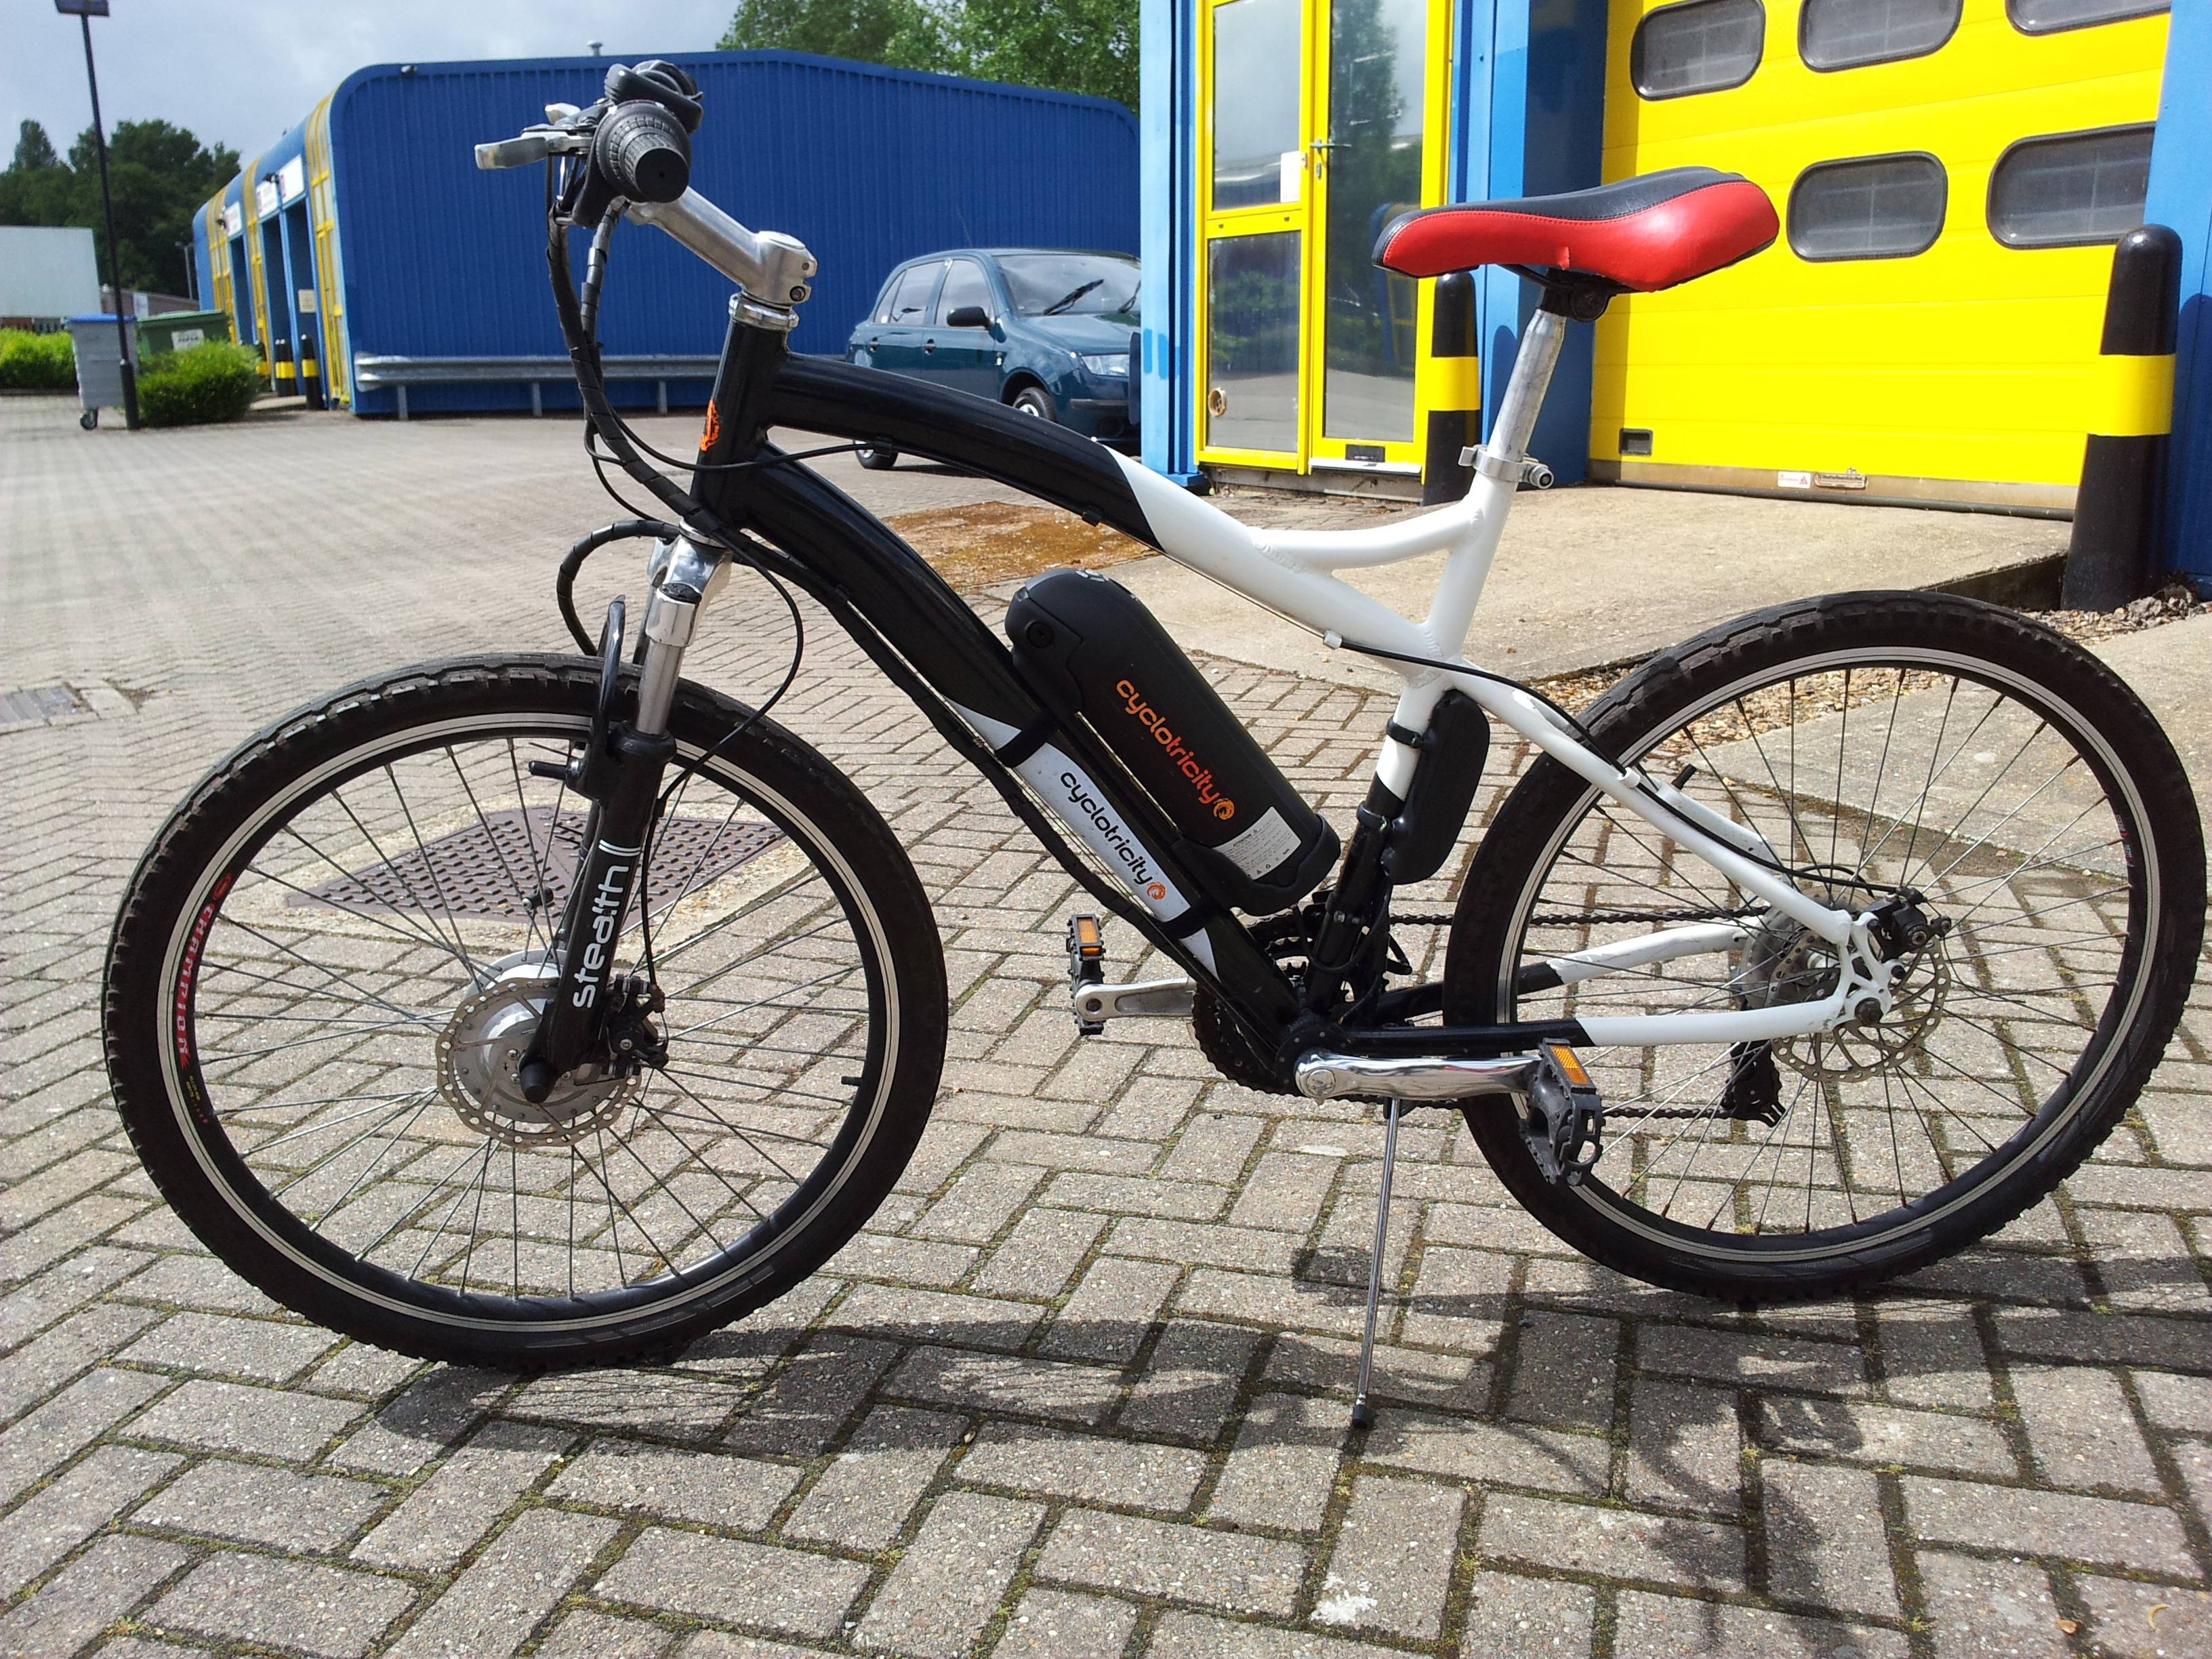 Bikes With Motors That Go Up To 20 Mph Electric bicycle